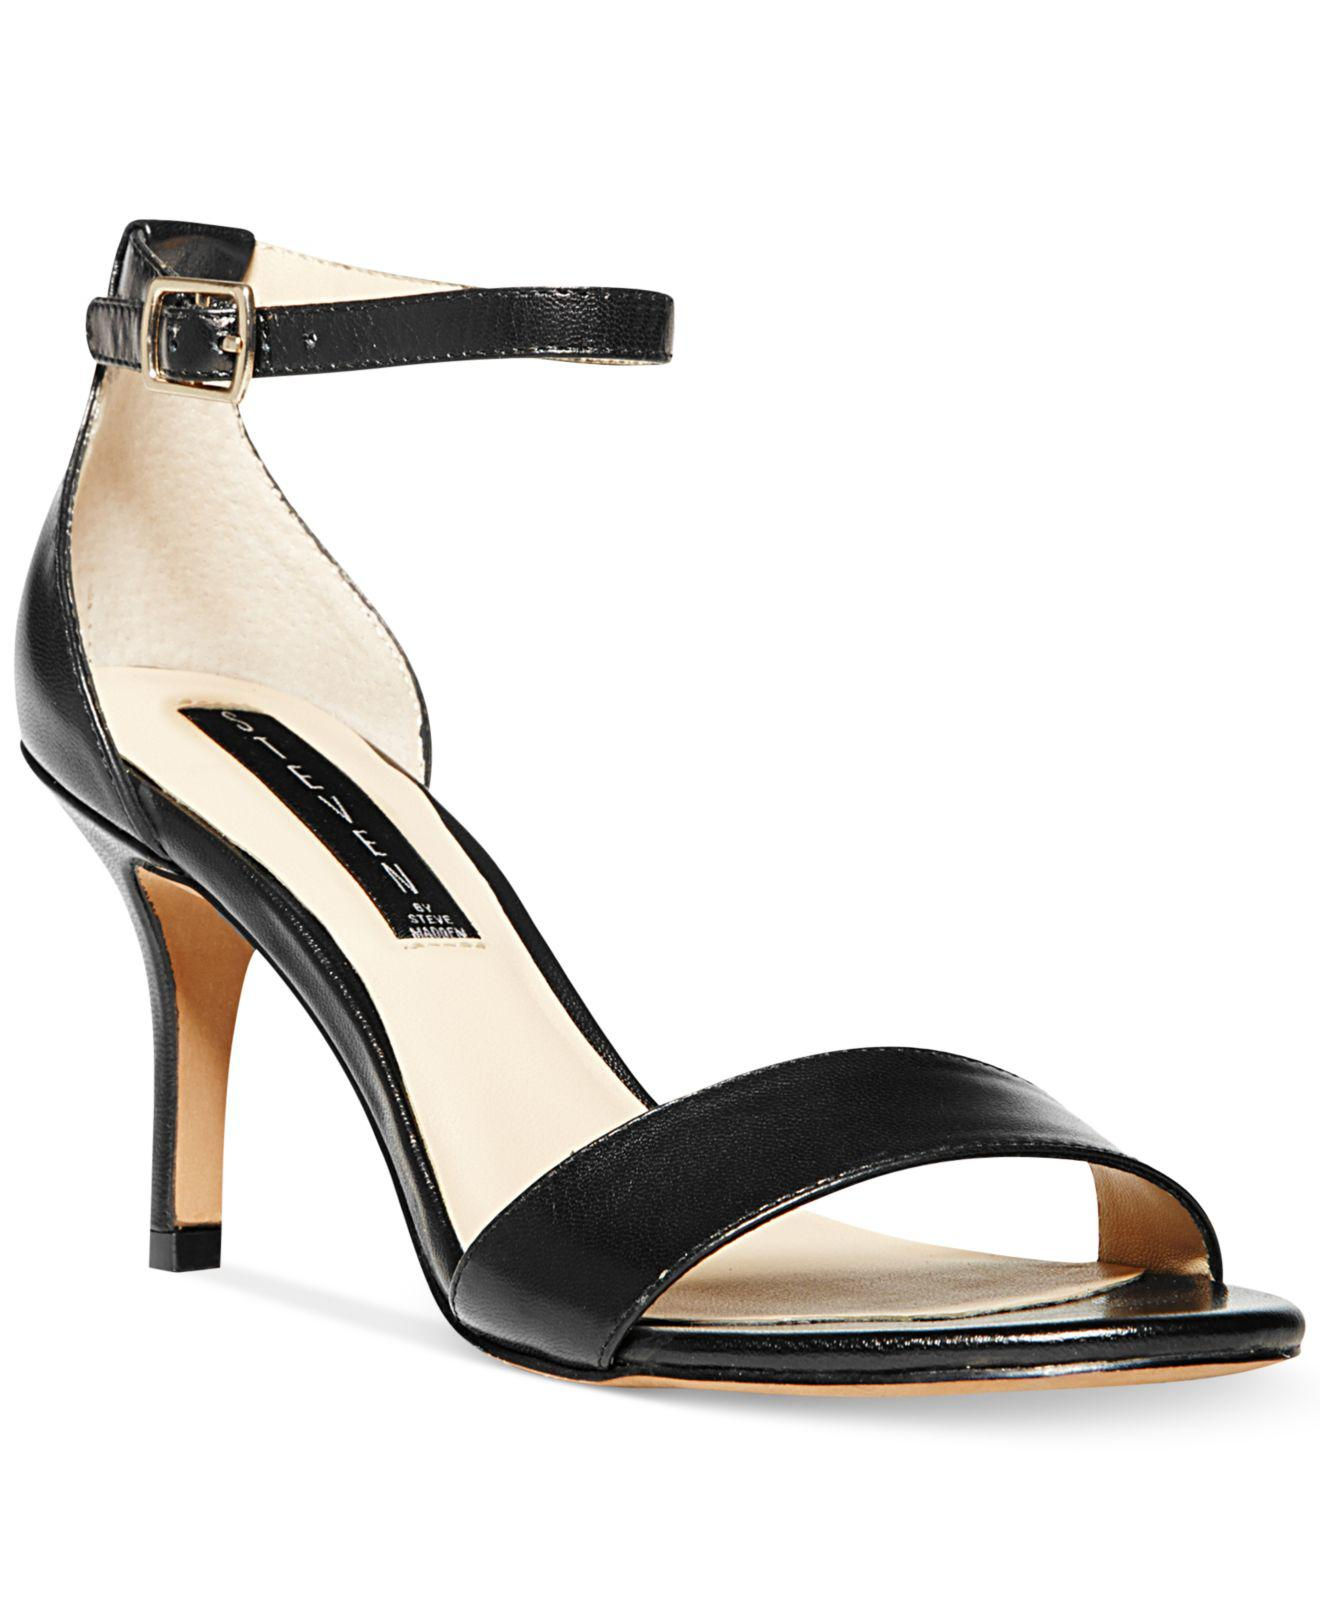 Steven by Steve Madden. Women's Black Vienna Sandals